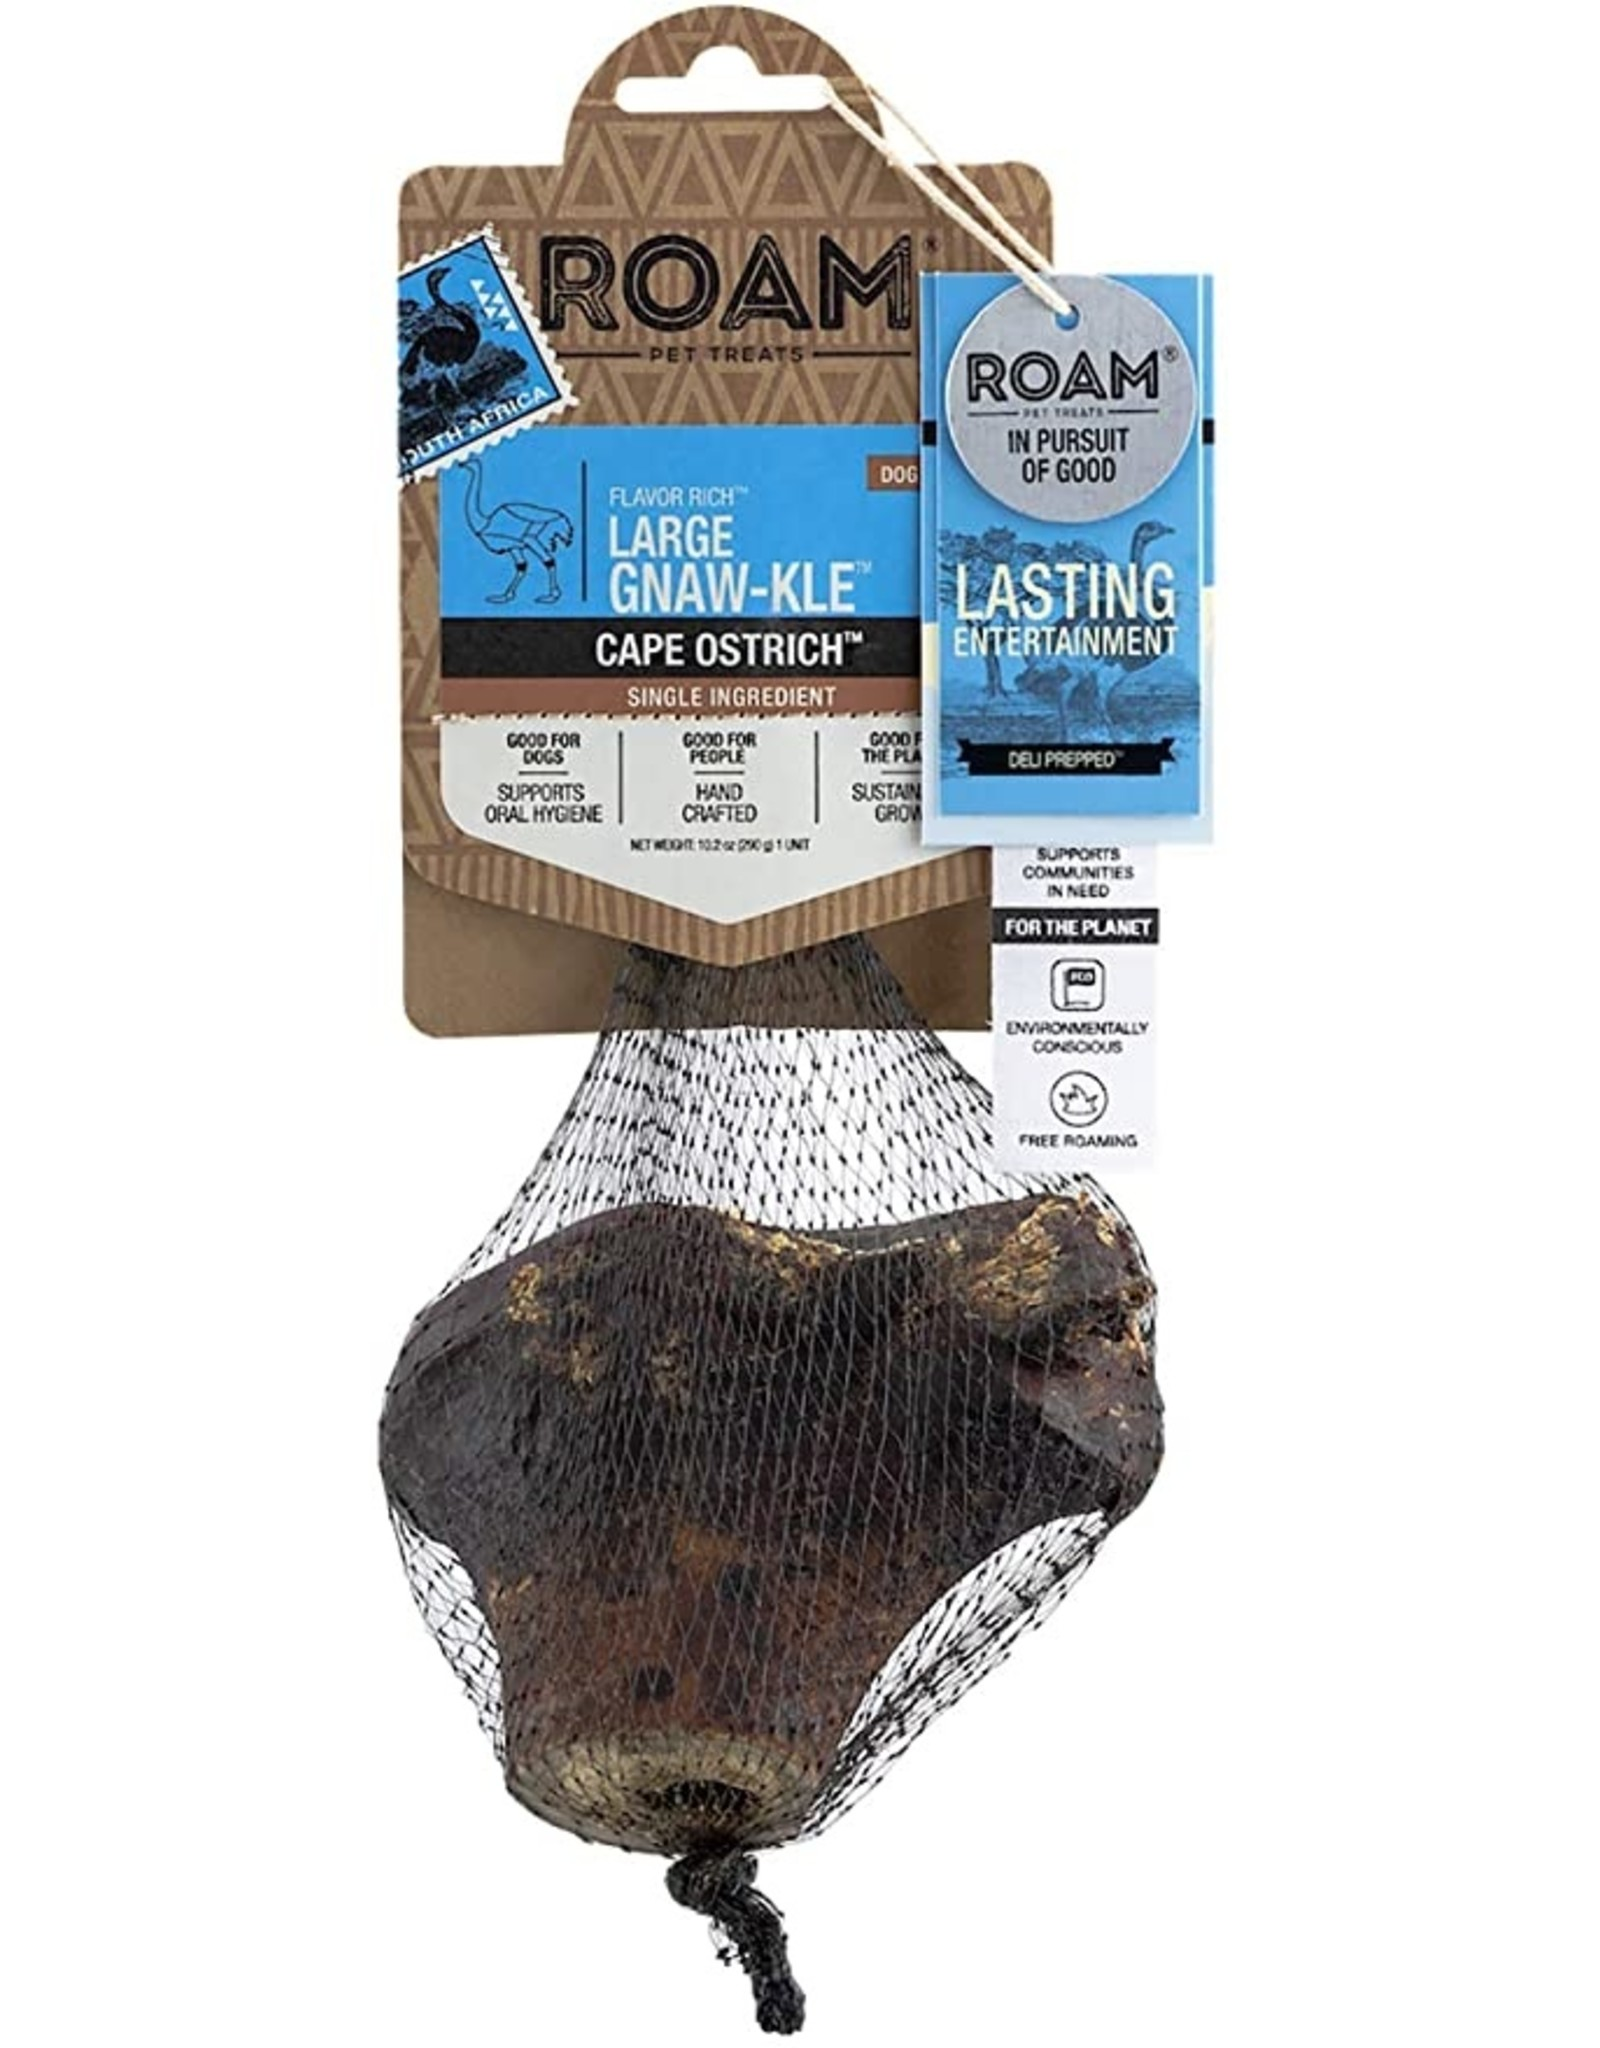 Roam Pet Treats ROAM PET TREATS CAPE OSTRICH LARGE GNAW-KLE